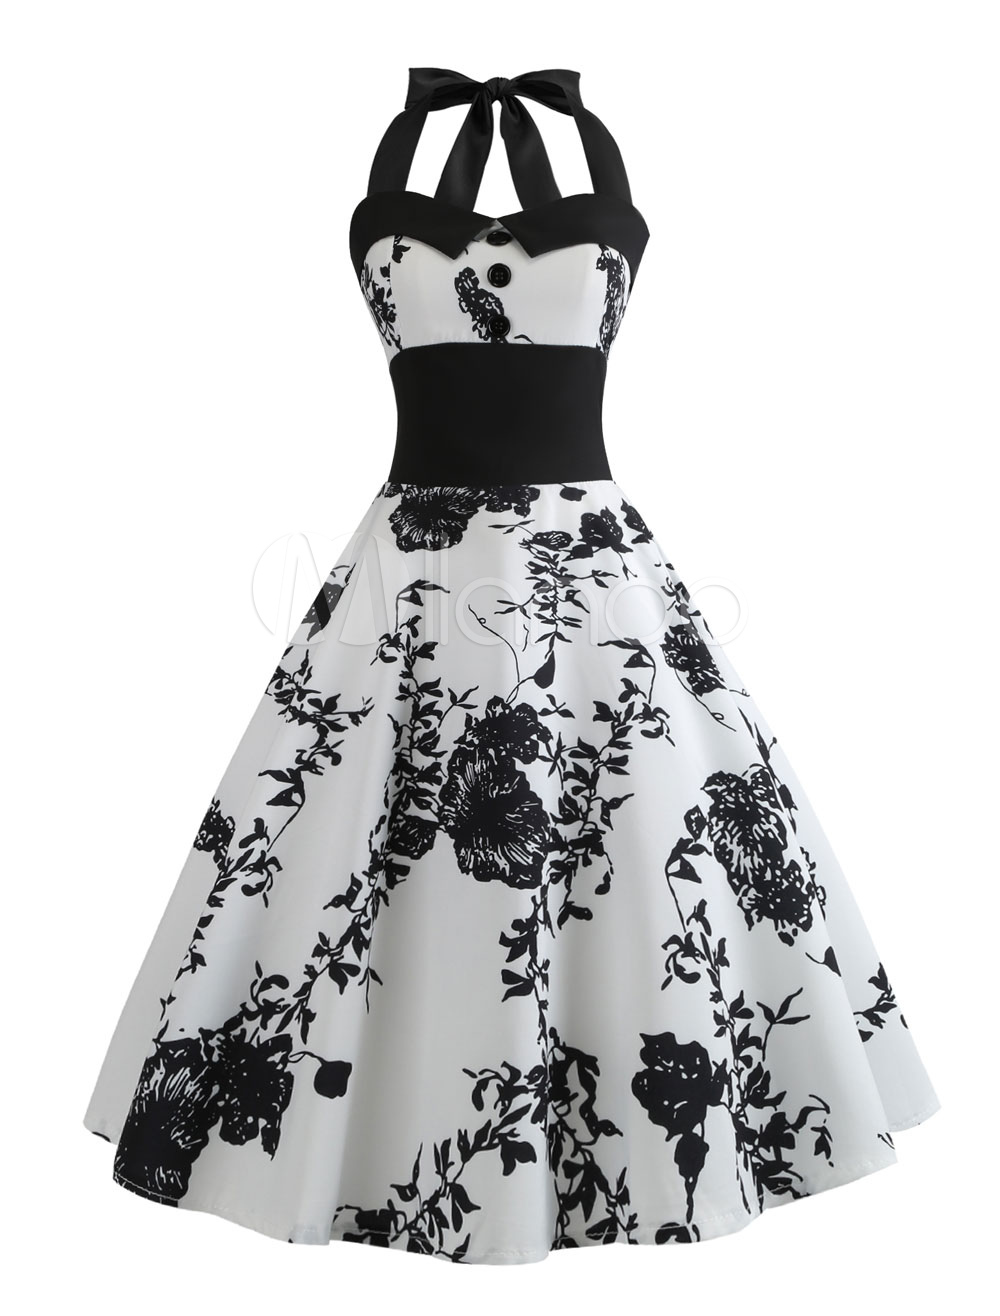 0a1b7e3751db White Vintage Dress 1950s Floral Swing Dress Halter Buttons Pin Up Summer  Dress-No. 1. 30%OFF. Color White